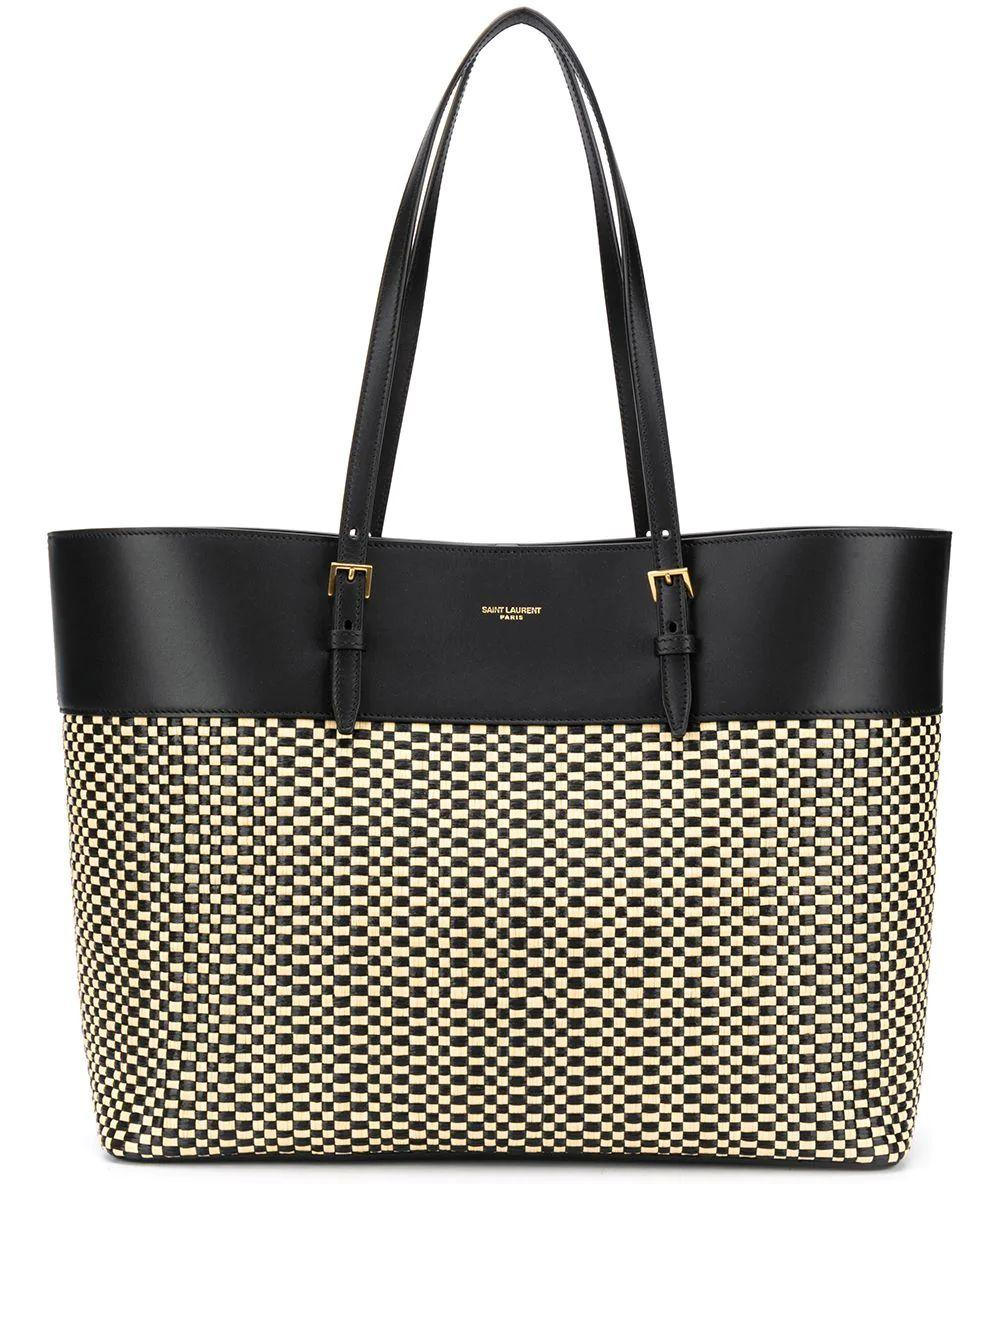 Medium East West Tote